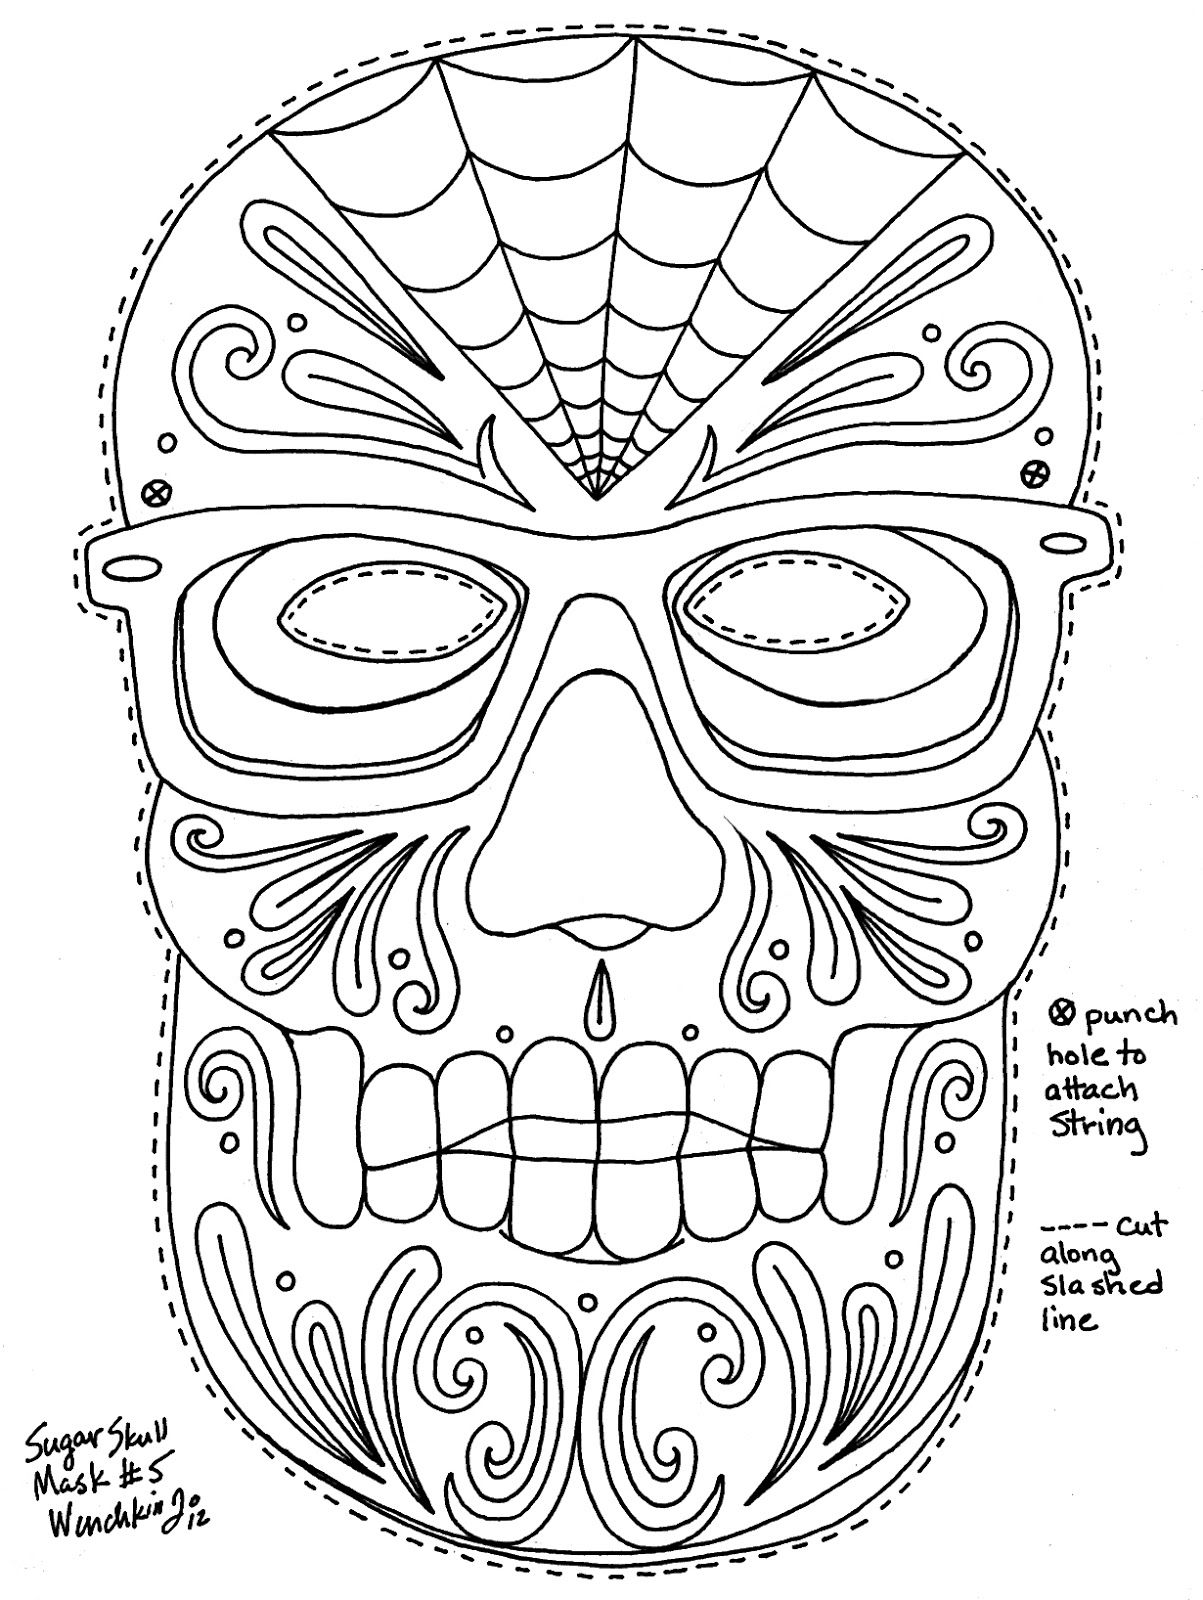 Sugar skull masks. Or coloring pages. | Printables | Pinterest